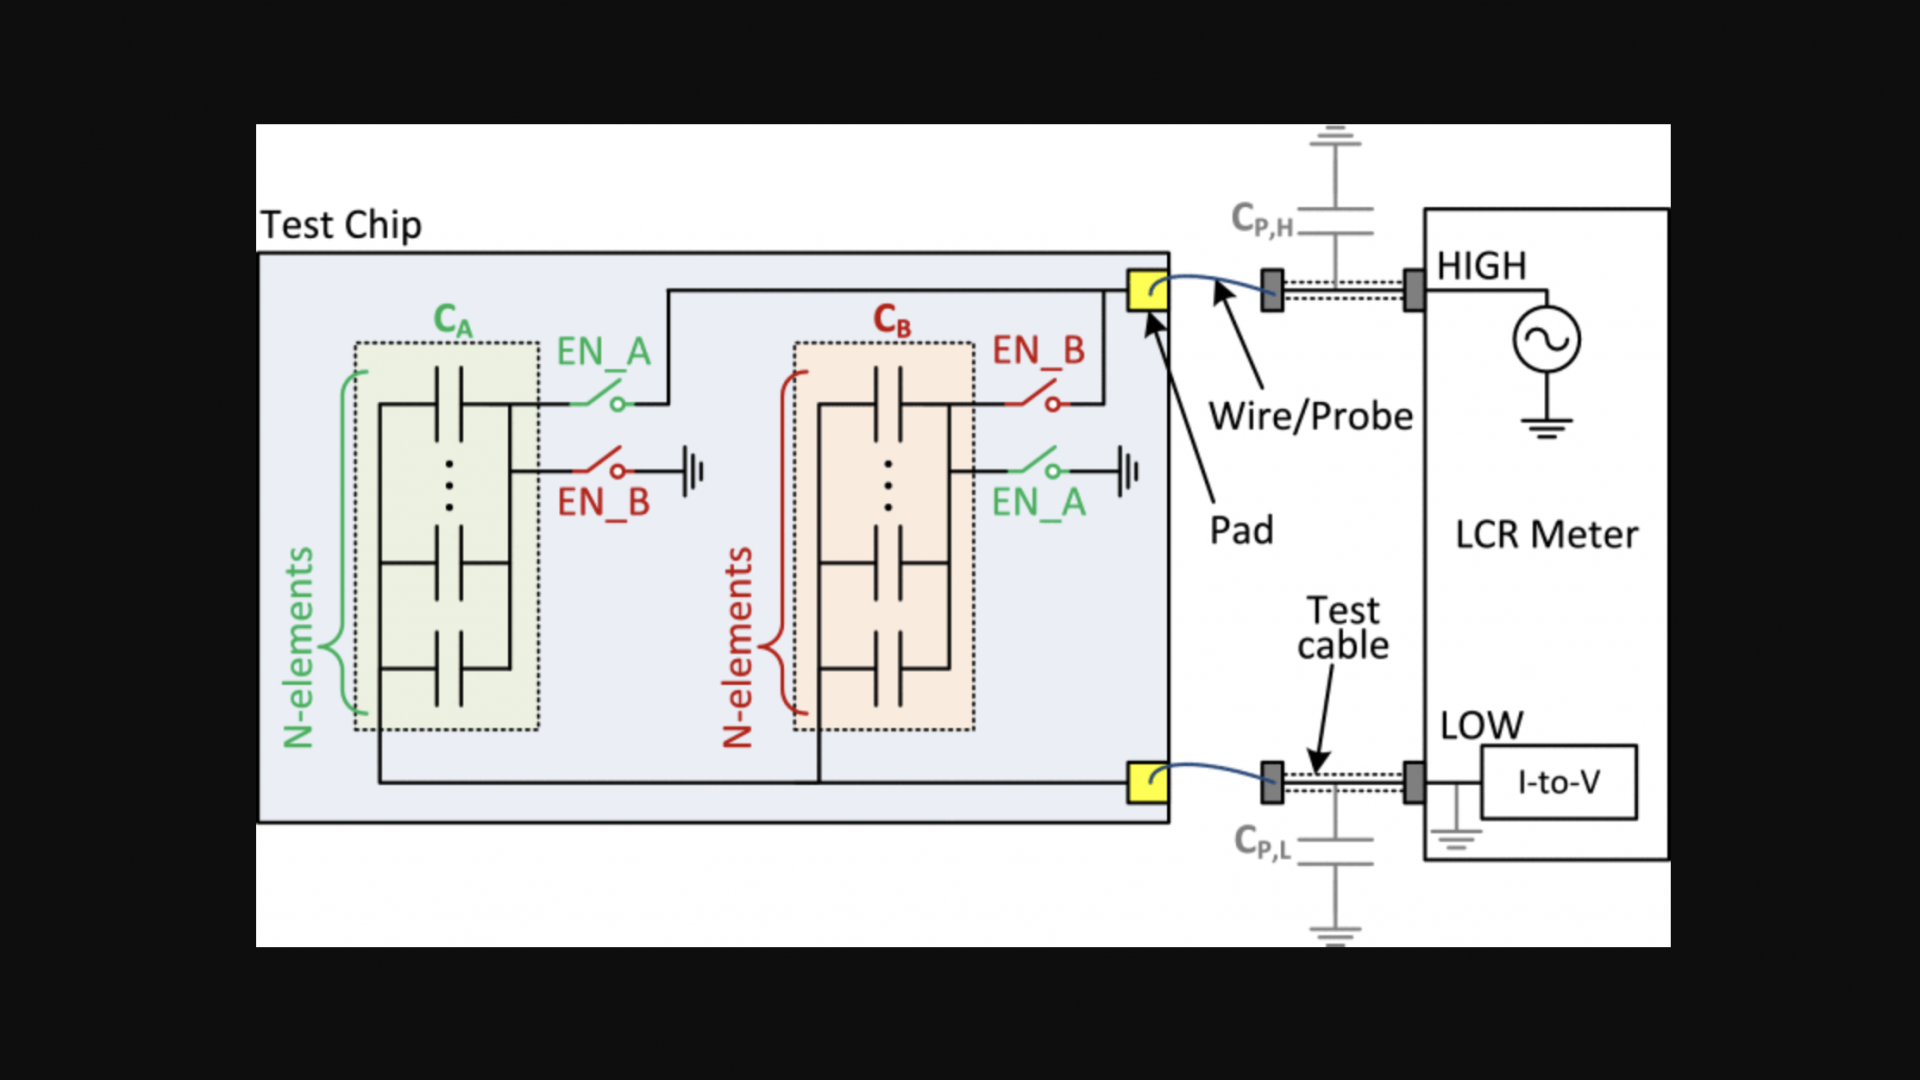 Direct mismatch characterization of femtofarad capacitors